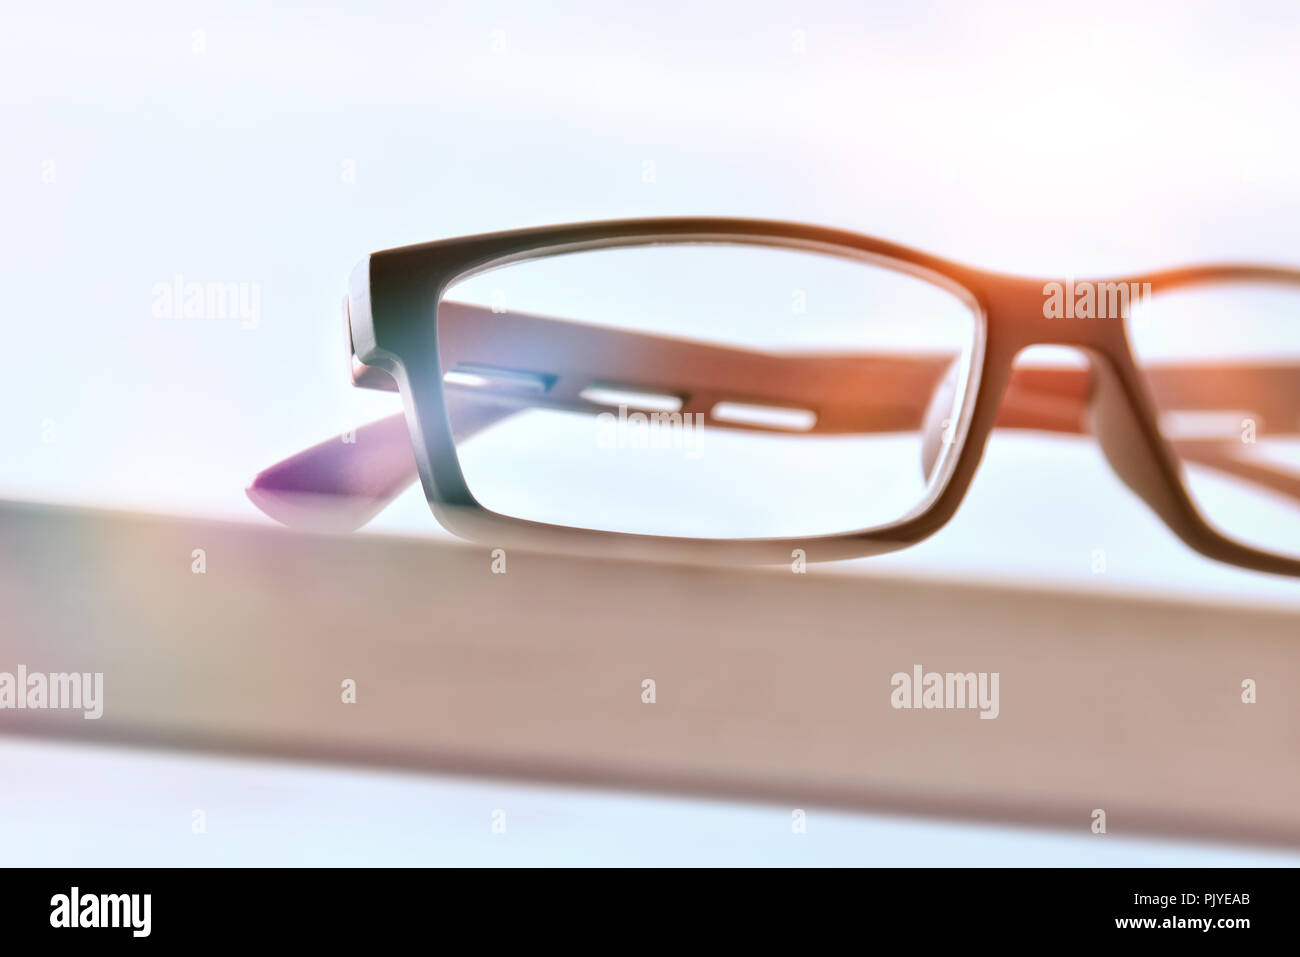 Eyewear on wood table and white background front view detail. Front view. Horizontal composition - Stock Image